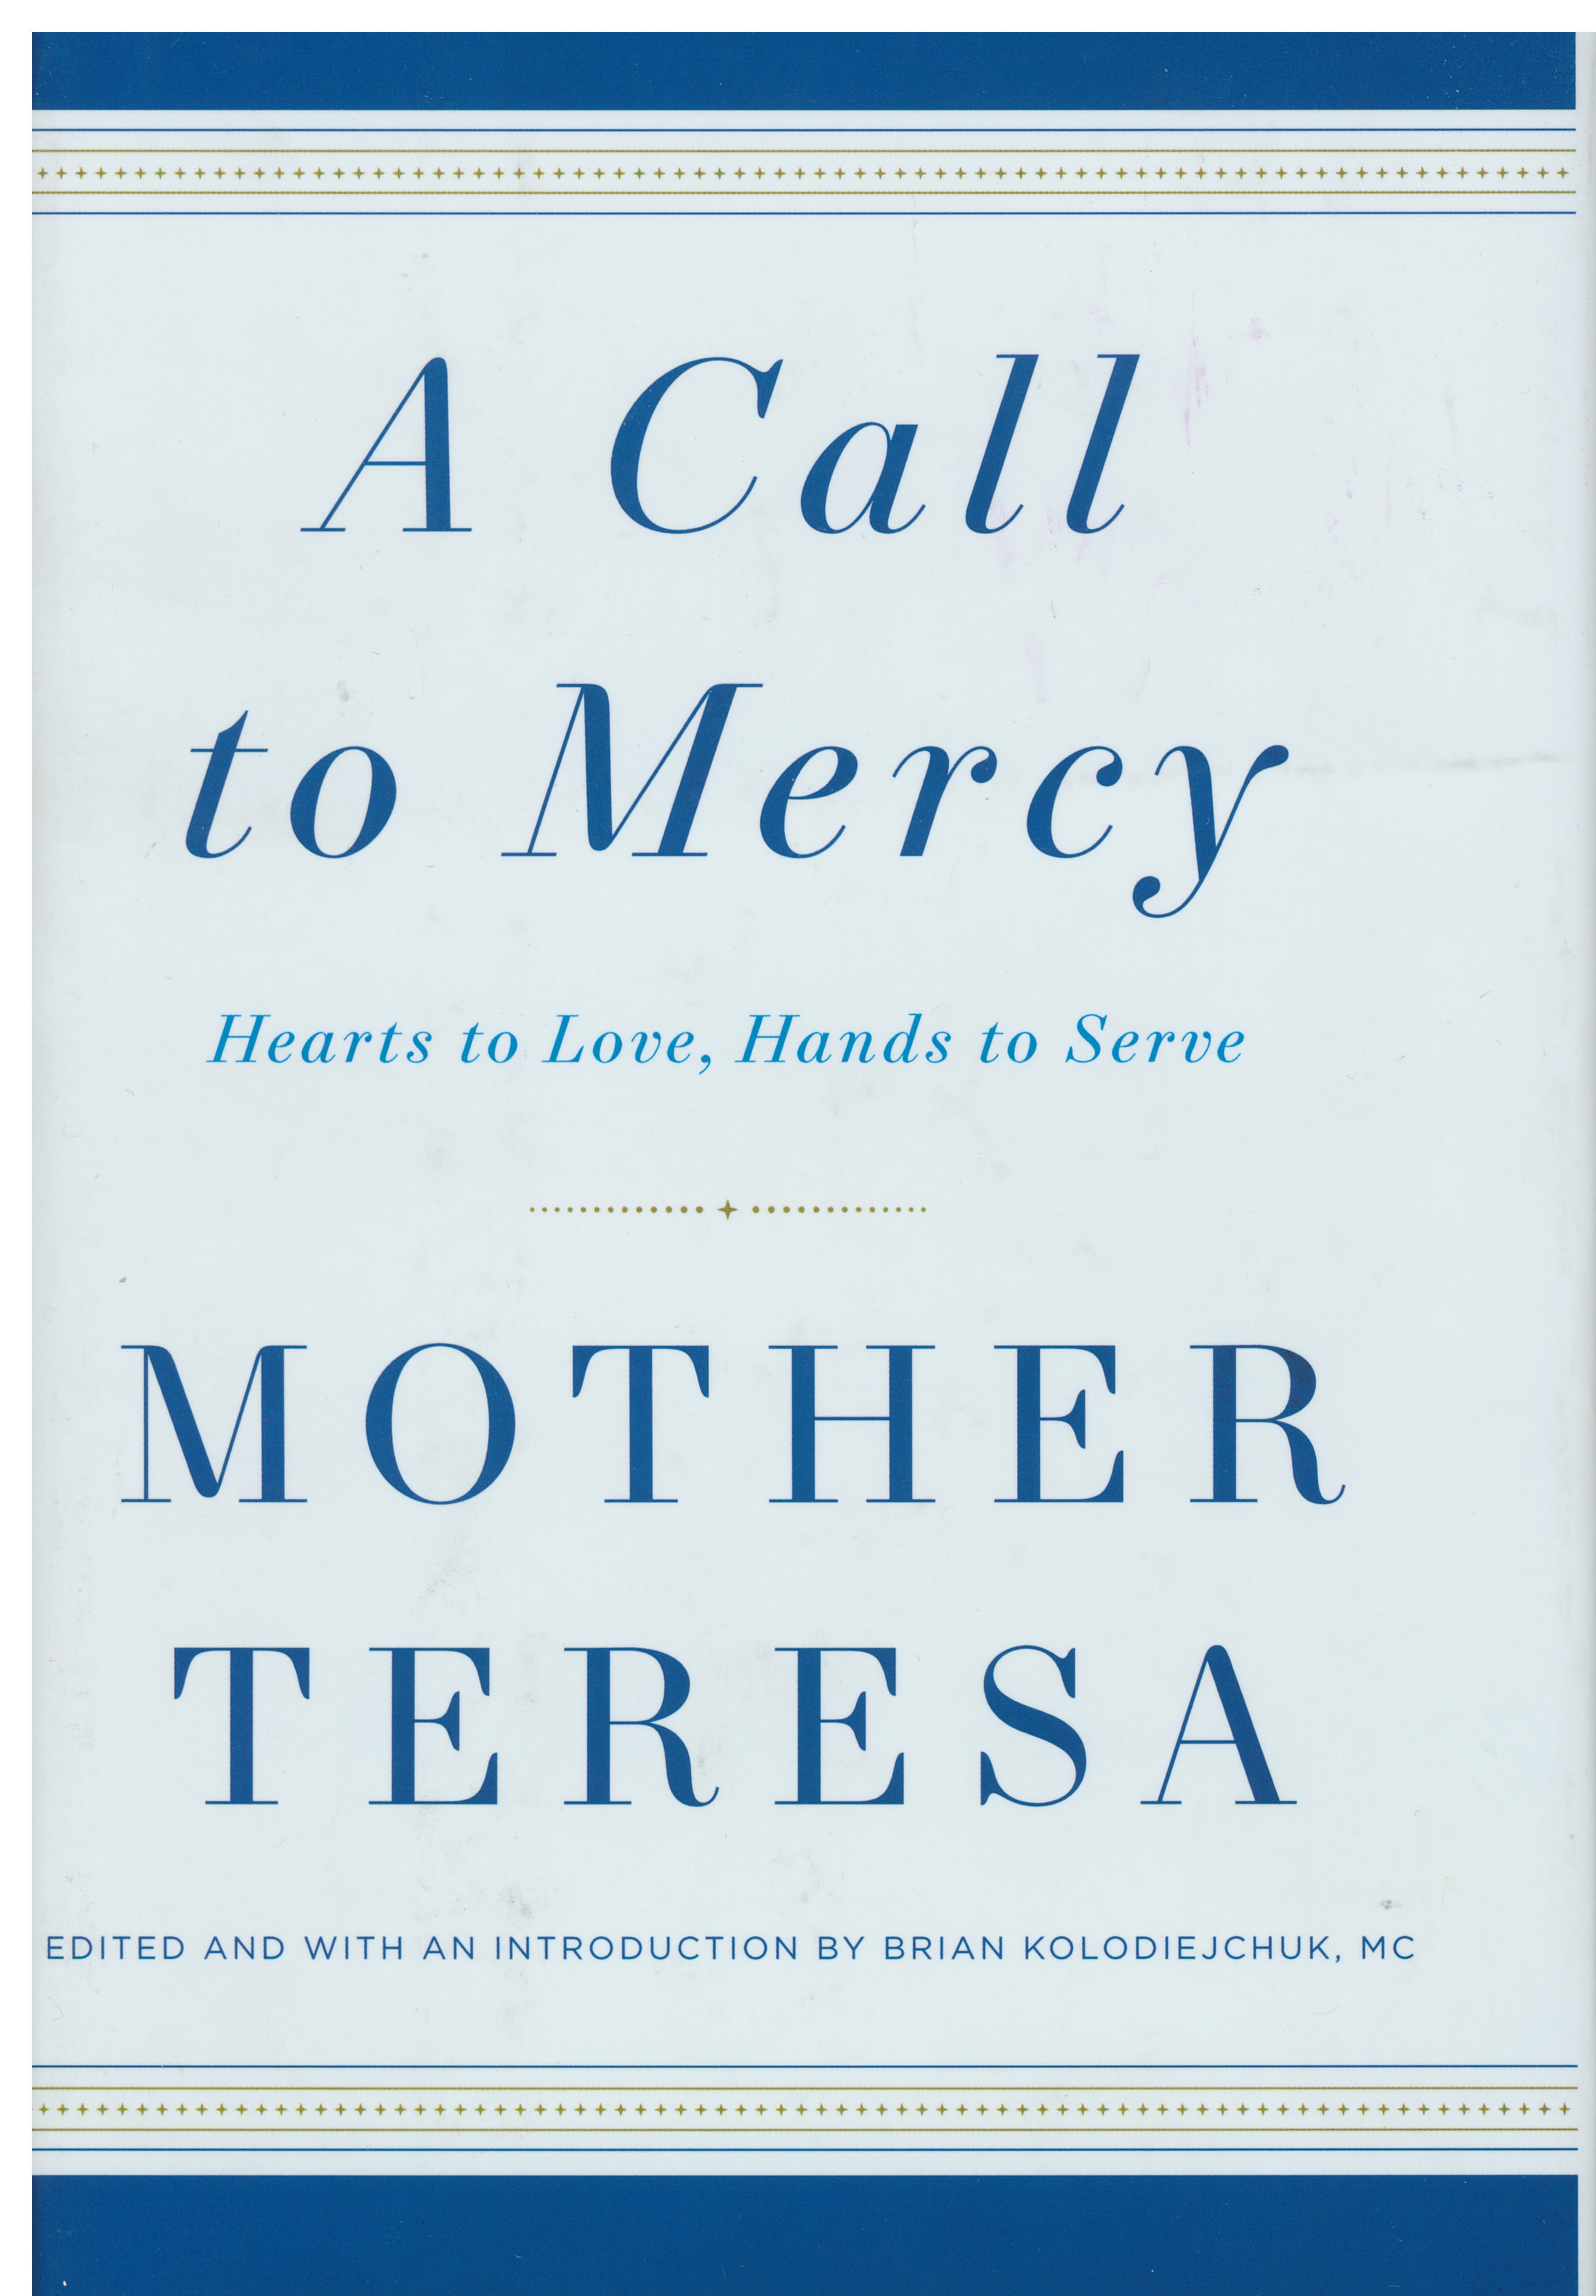 A Call To Mercy: Hearts to Love by Mother Teresa 108-9780451498205